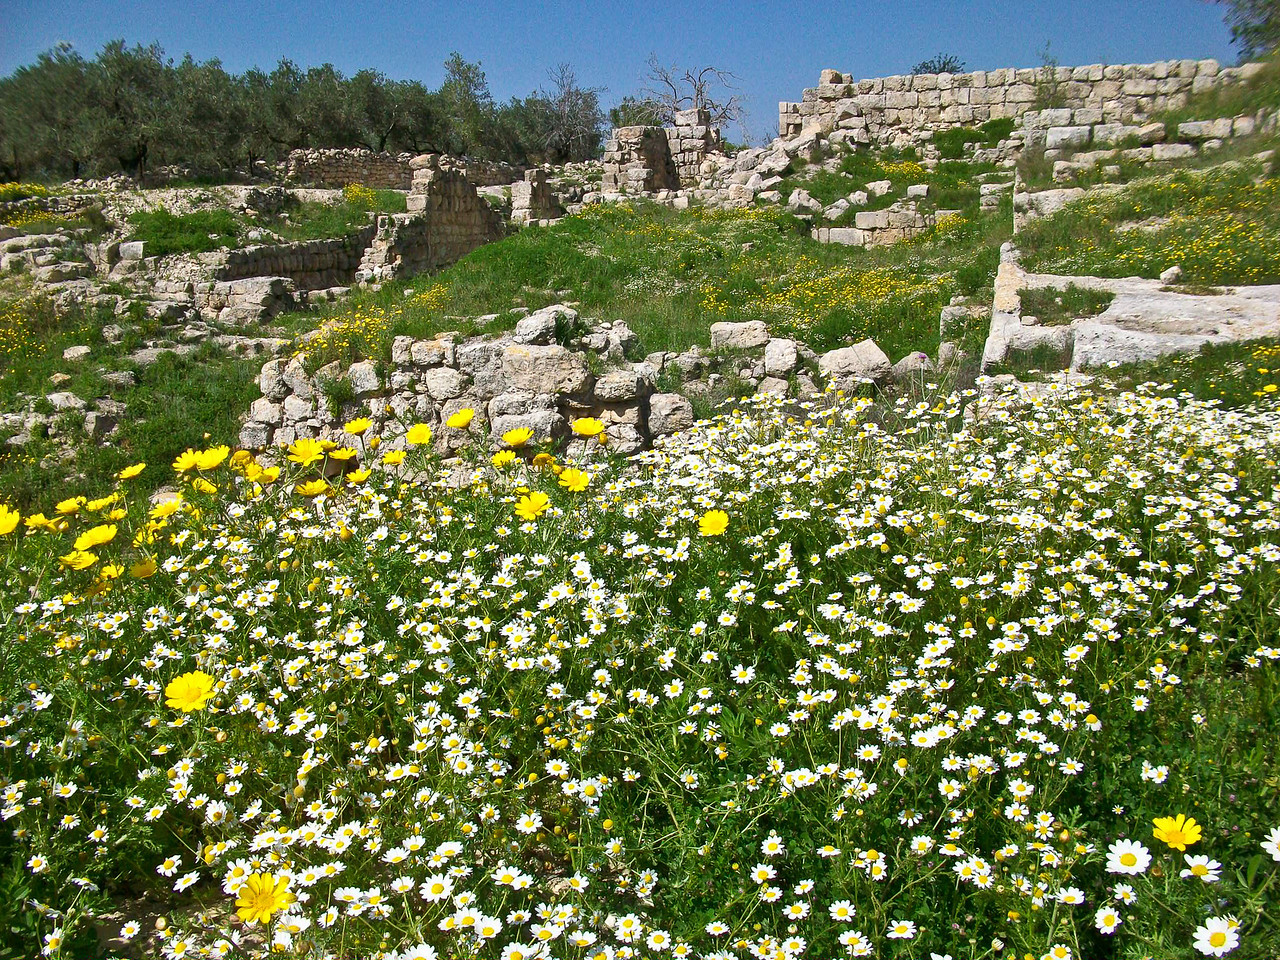 Roman ruins in the flowers